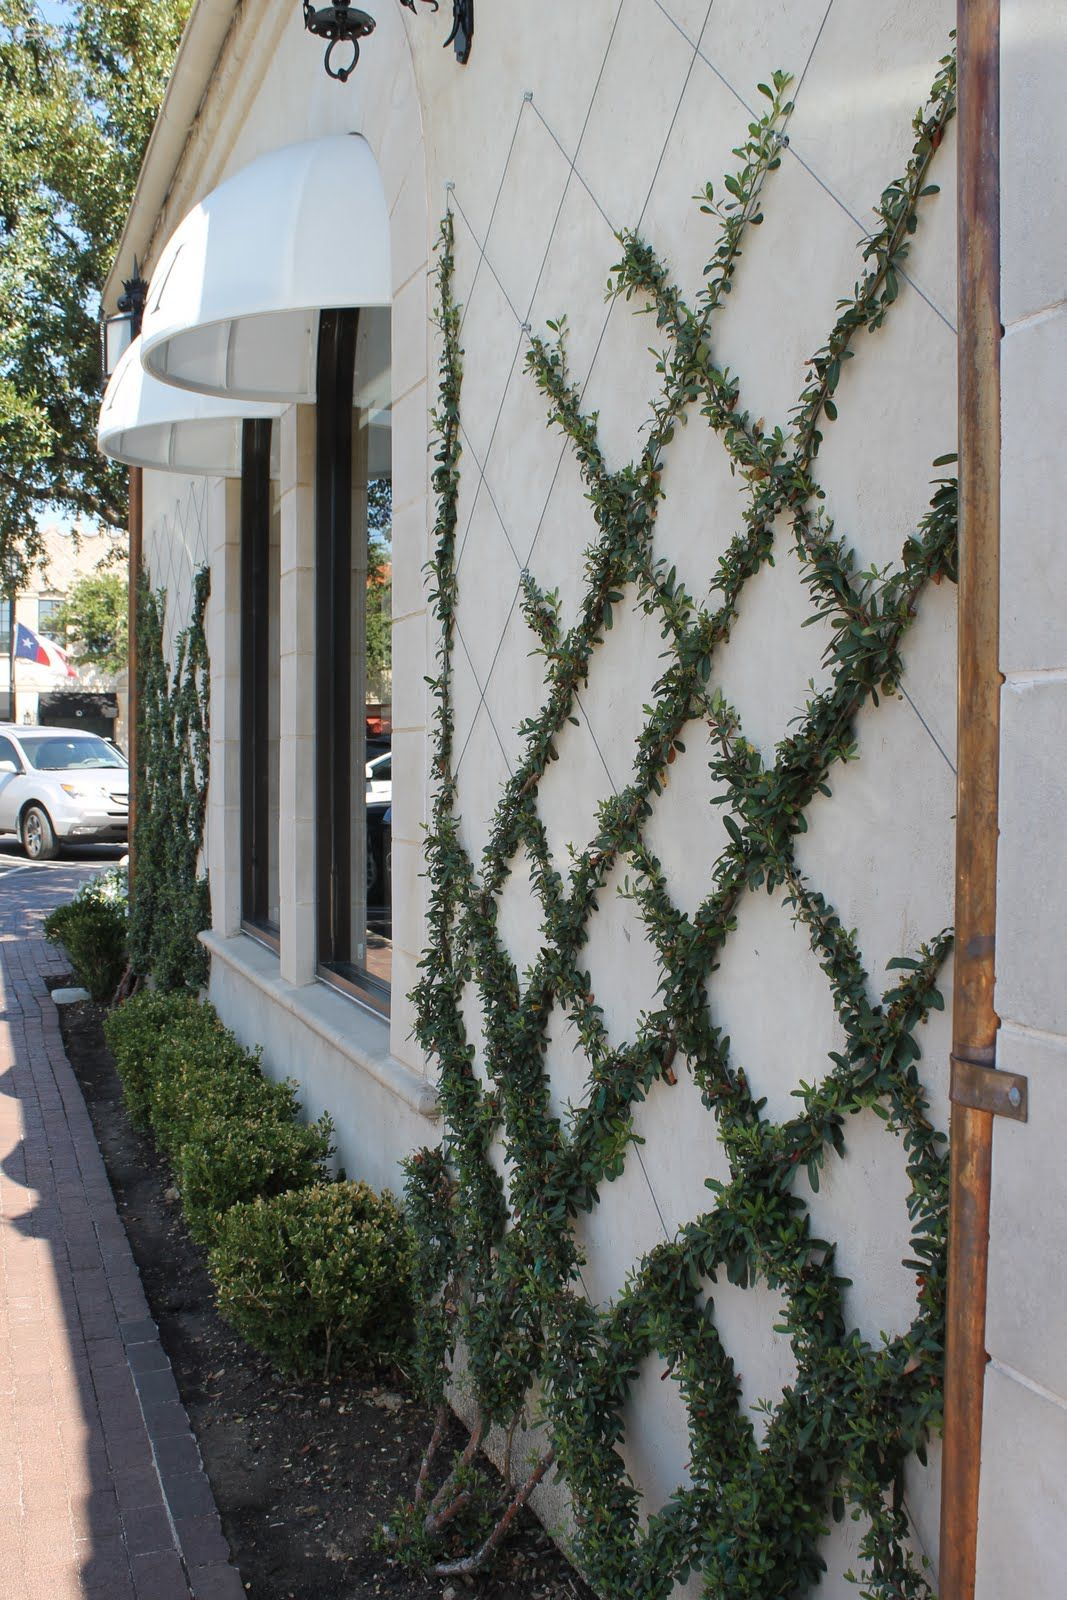 Criss Cross Some Wires Or Thread Against The Side Of House For A Small Leafed Ivy Trellis Could Probably Make An Intricate Design If You Take Time